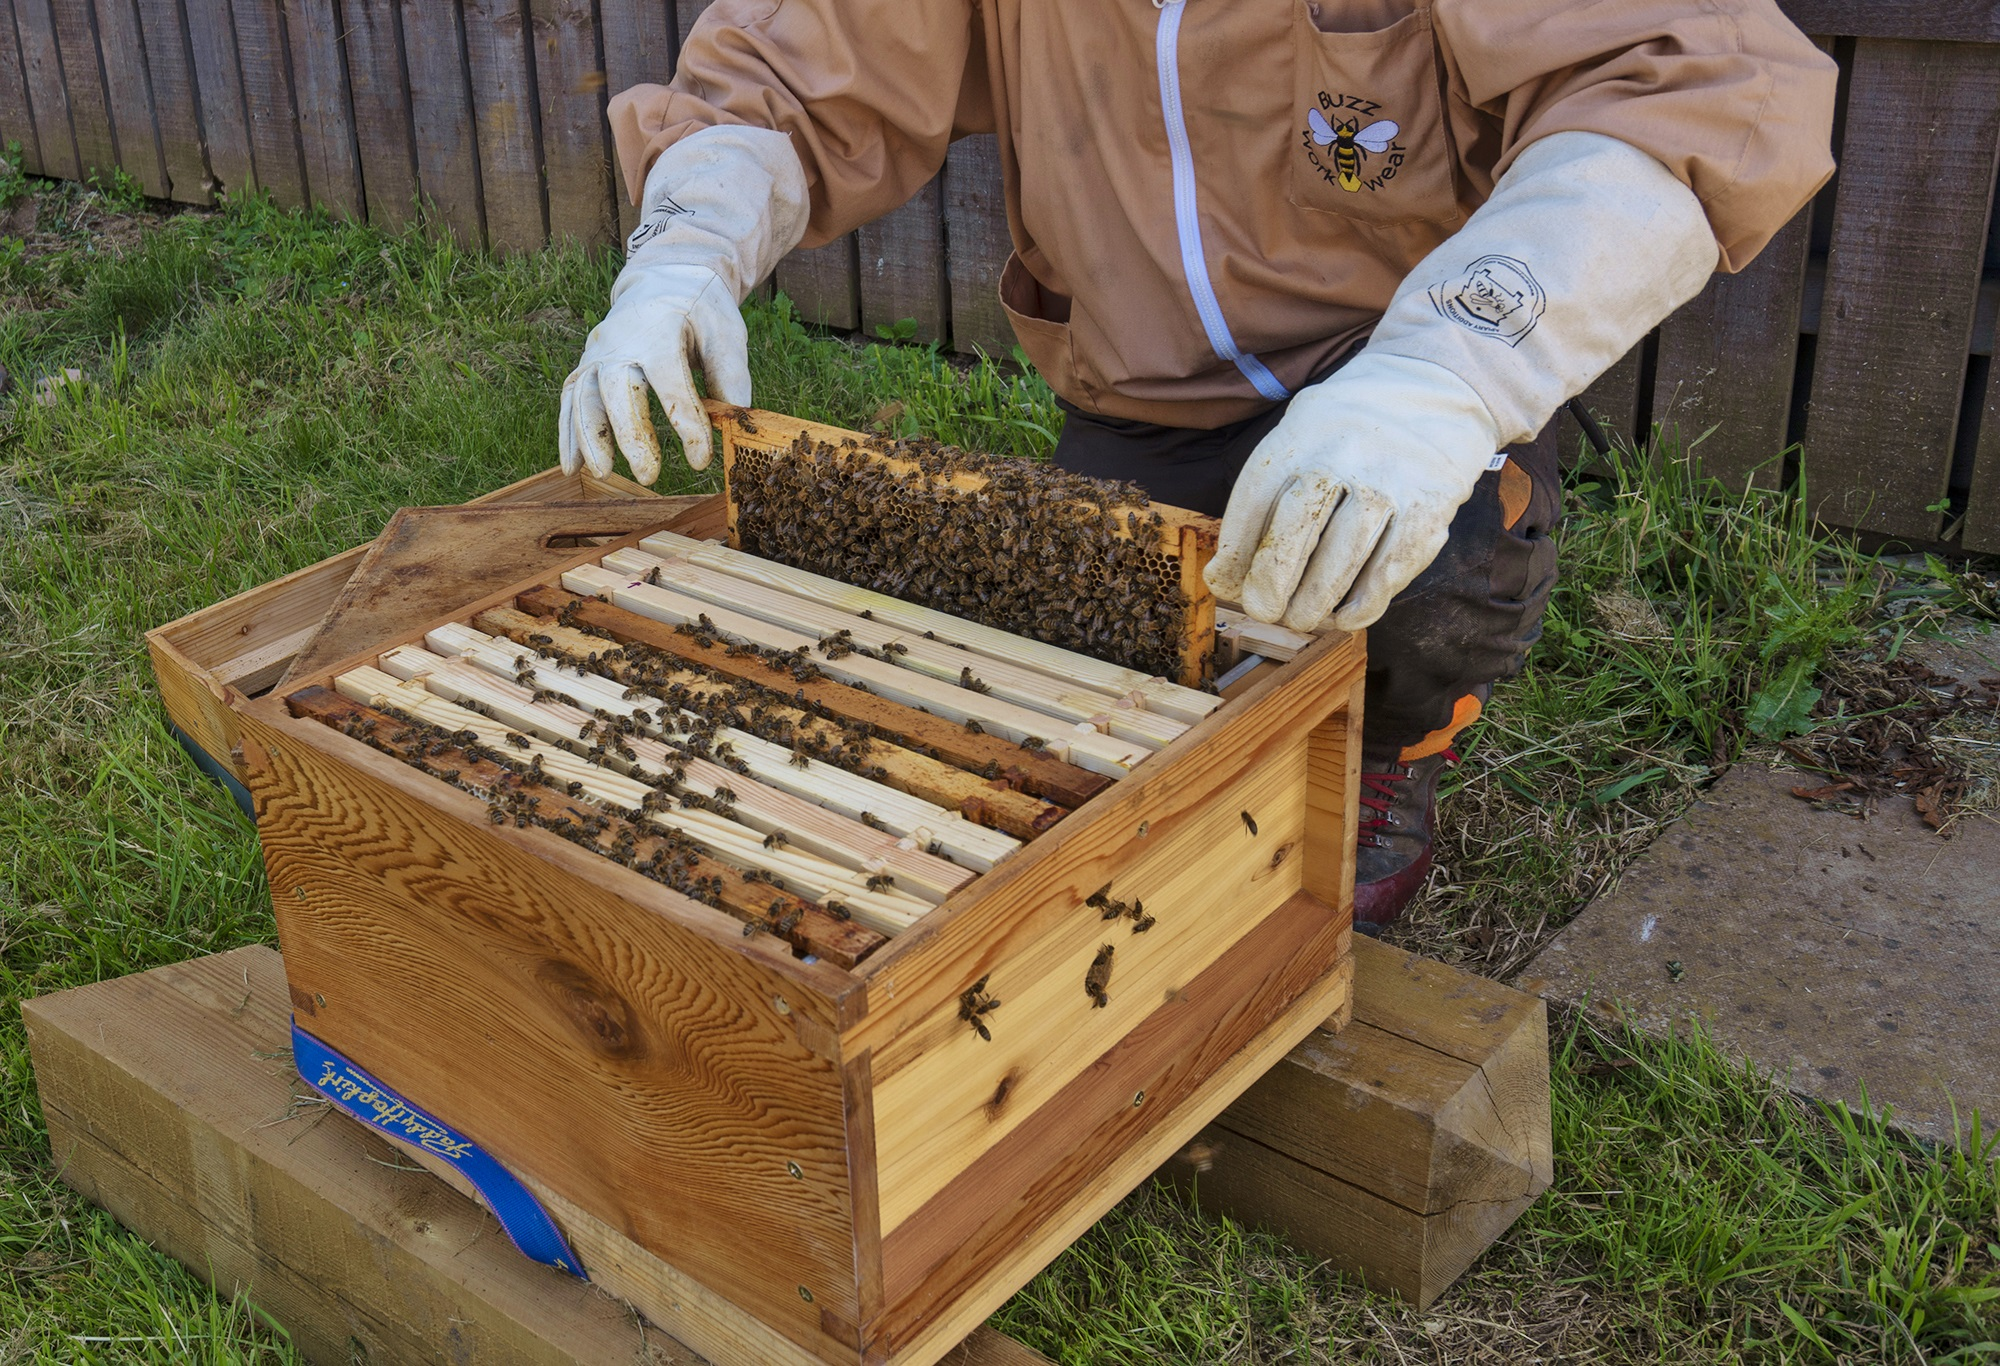 The-Blenheim-Palace-bees-in-their-new-hive-PIC-Pete-Seaward